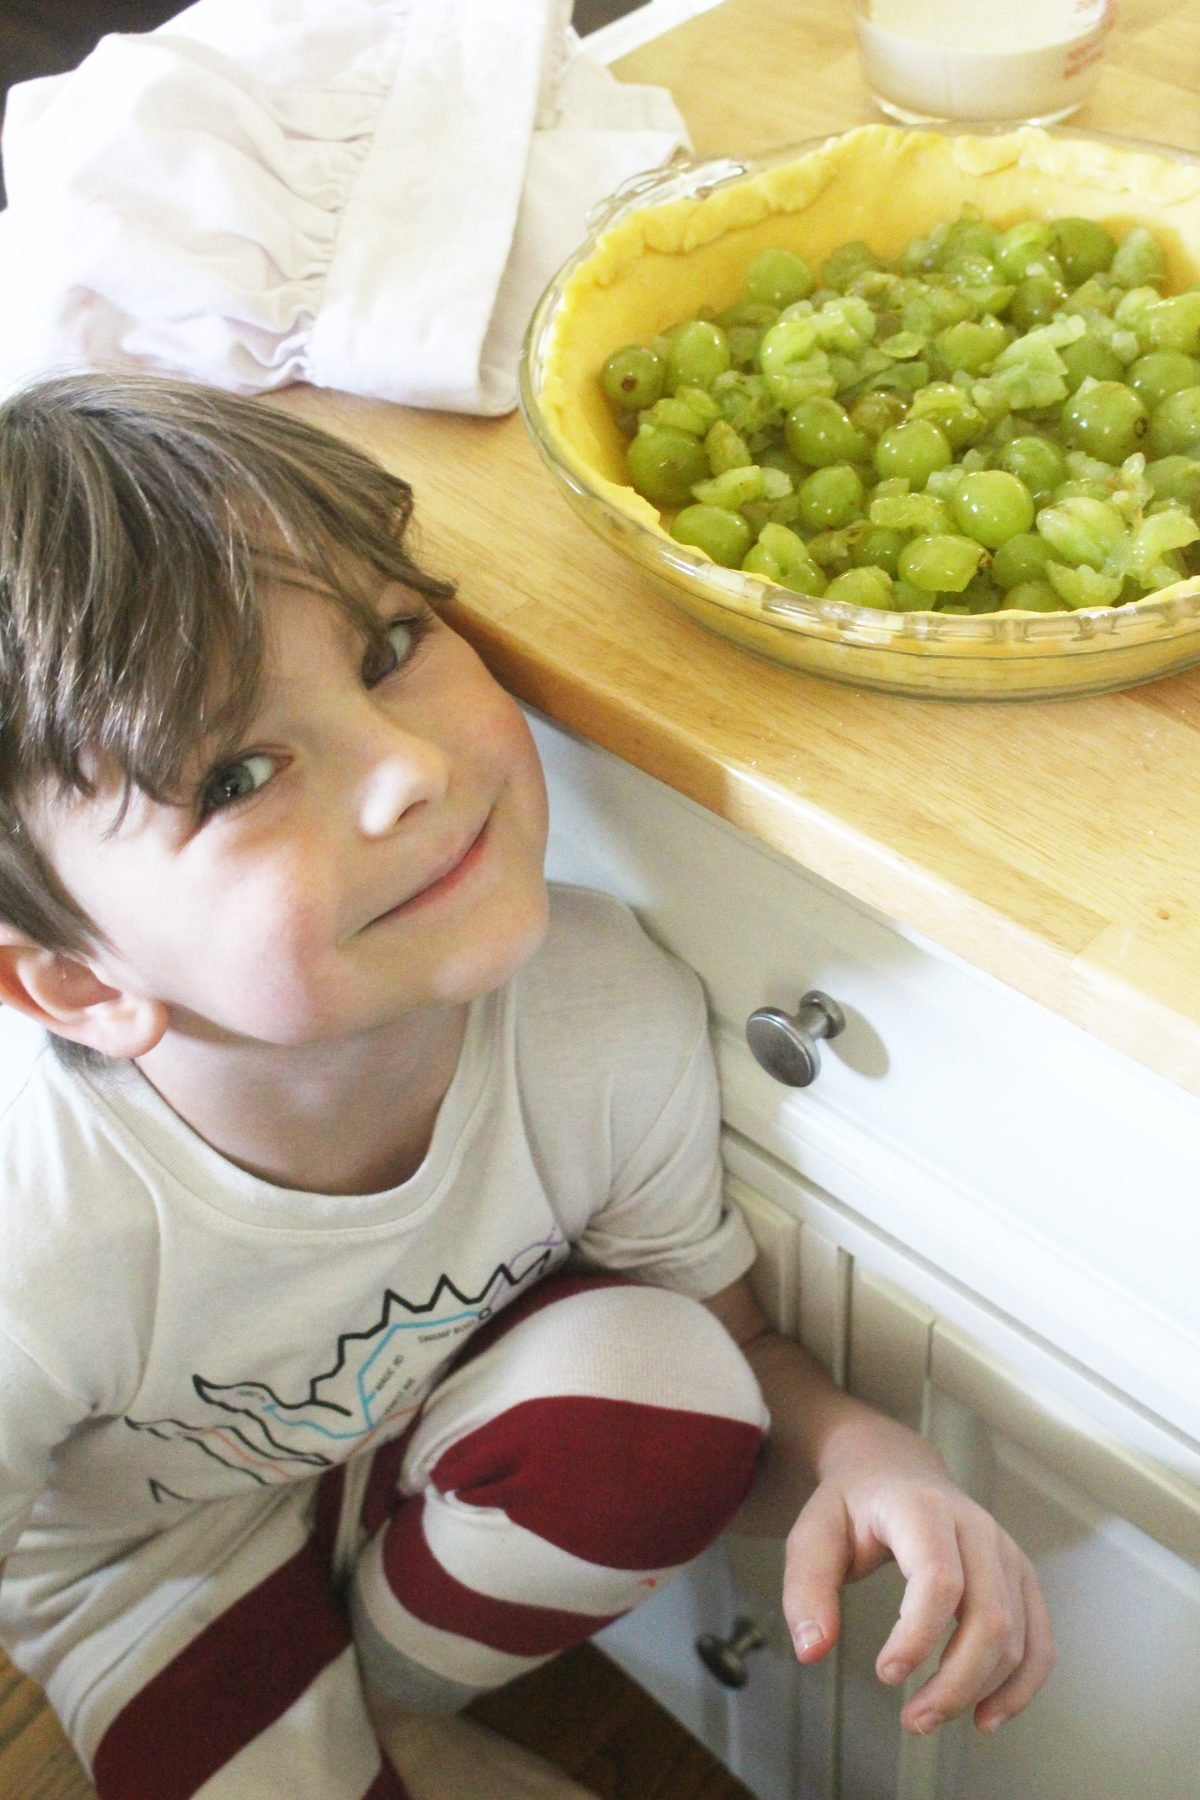 Young boy sitting next to an einkorn pie crust filled with green grapes